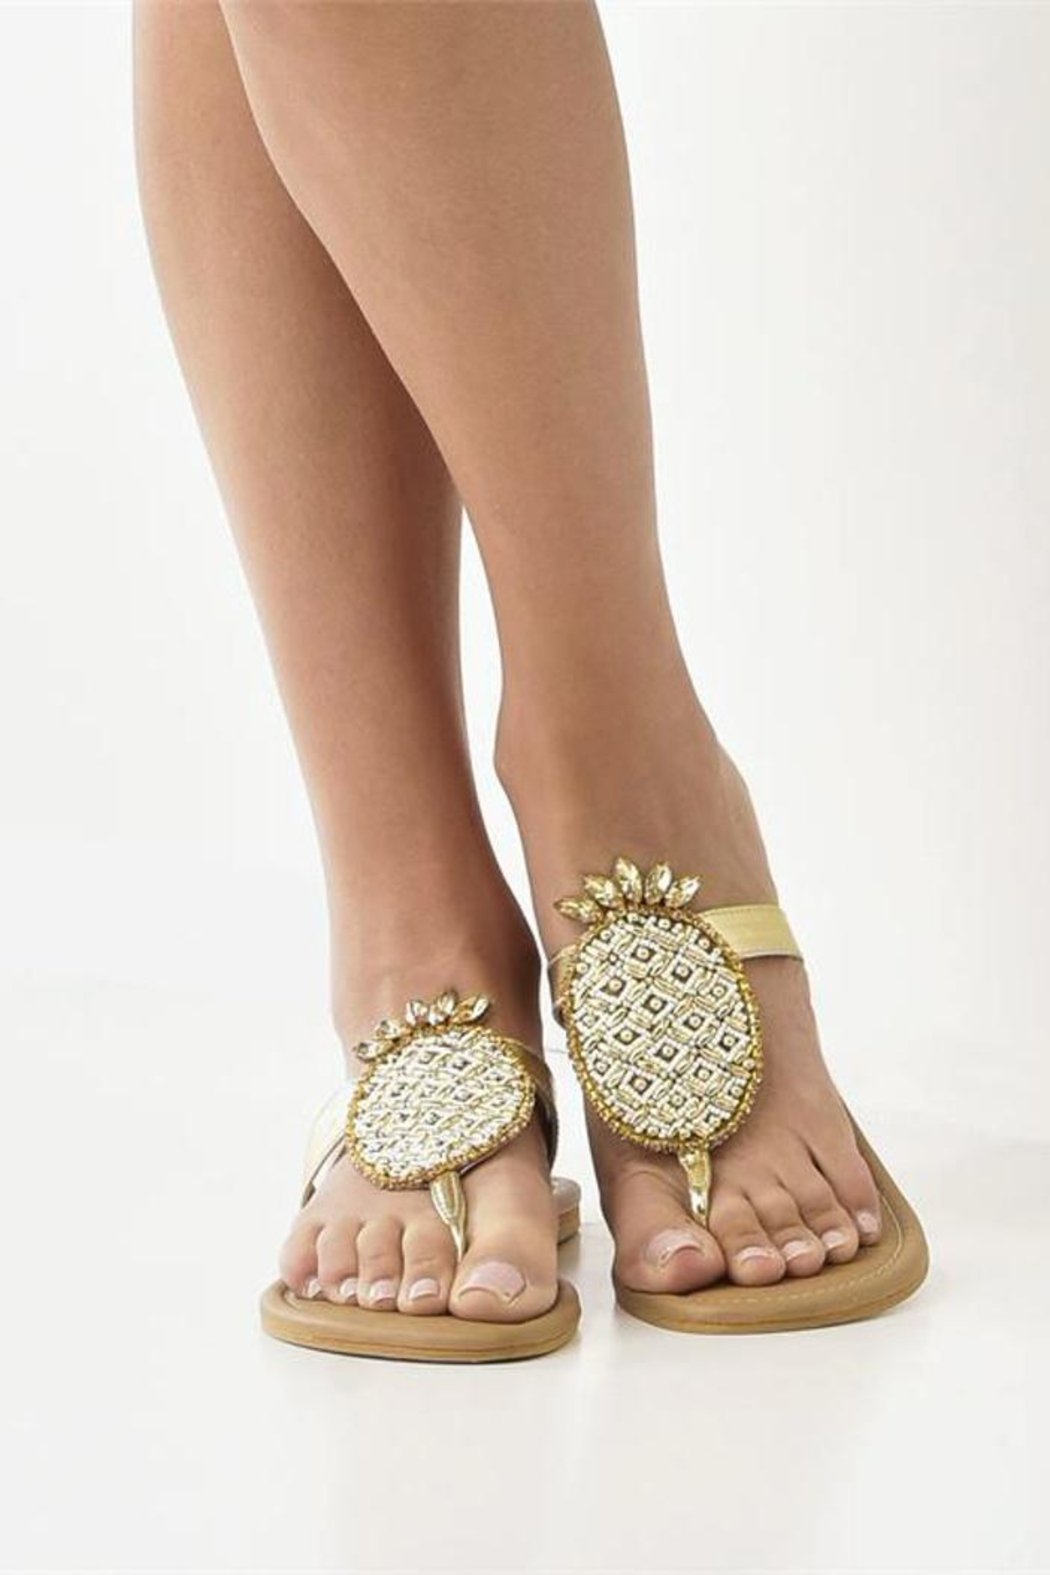 Charlie Paige Gold Pineapple Sandals - Main Image